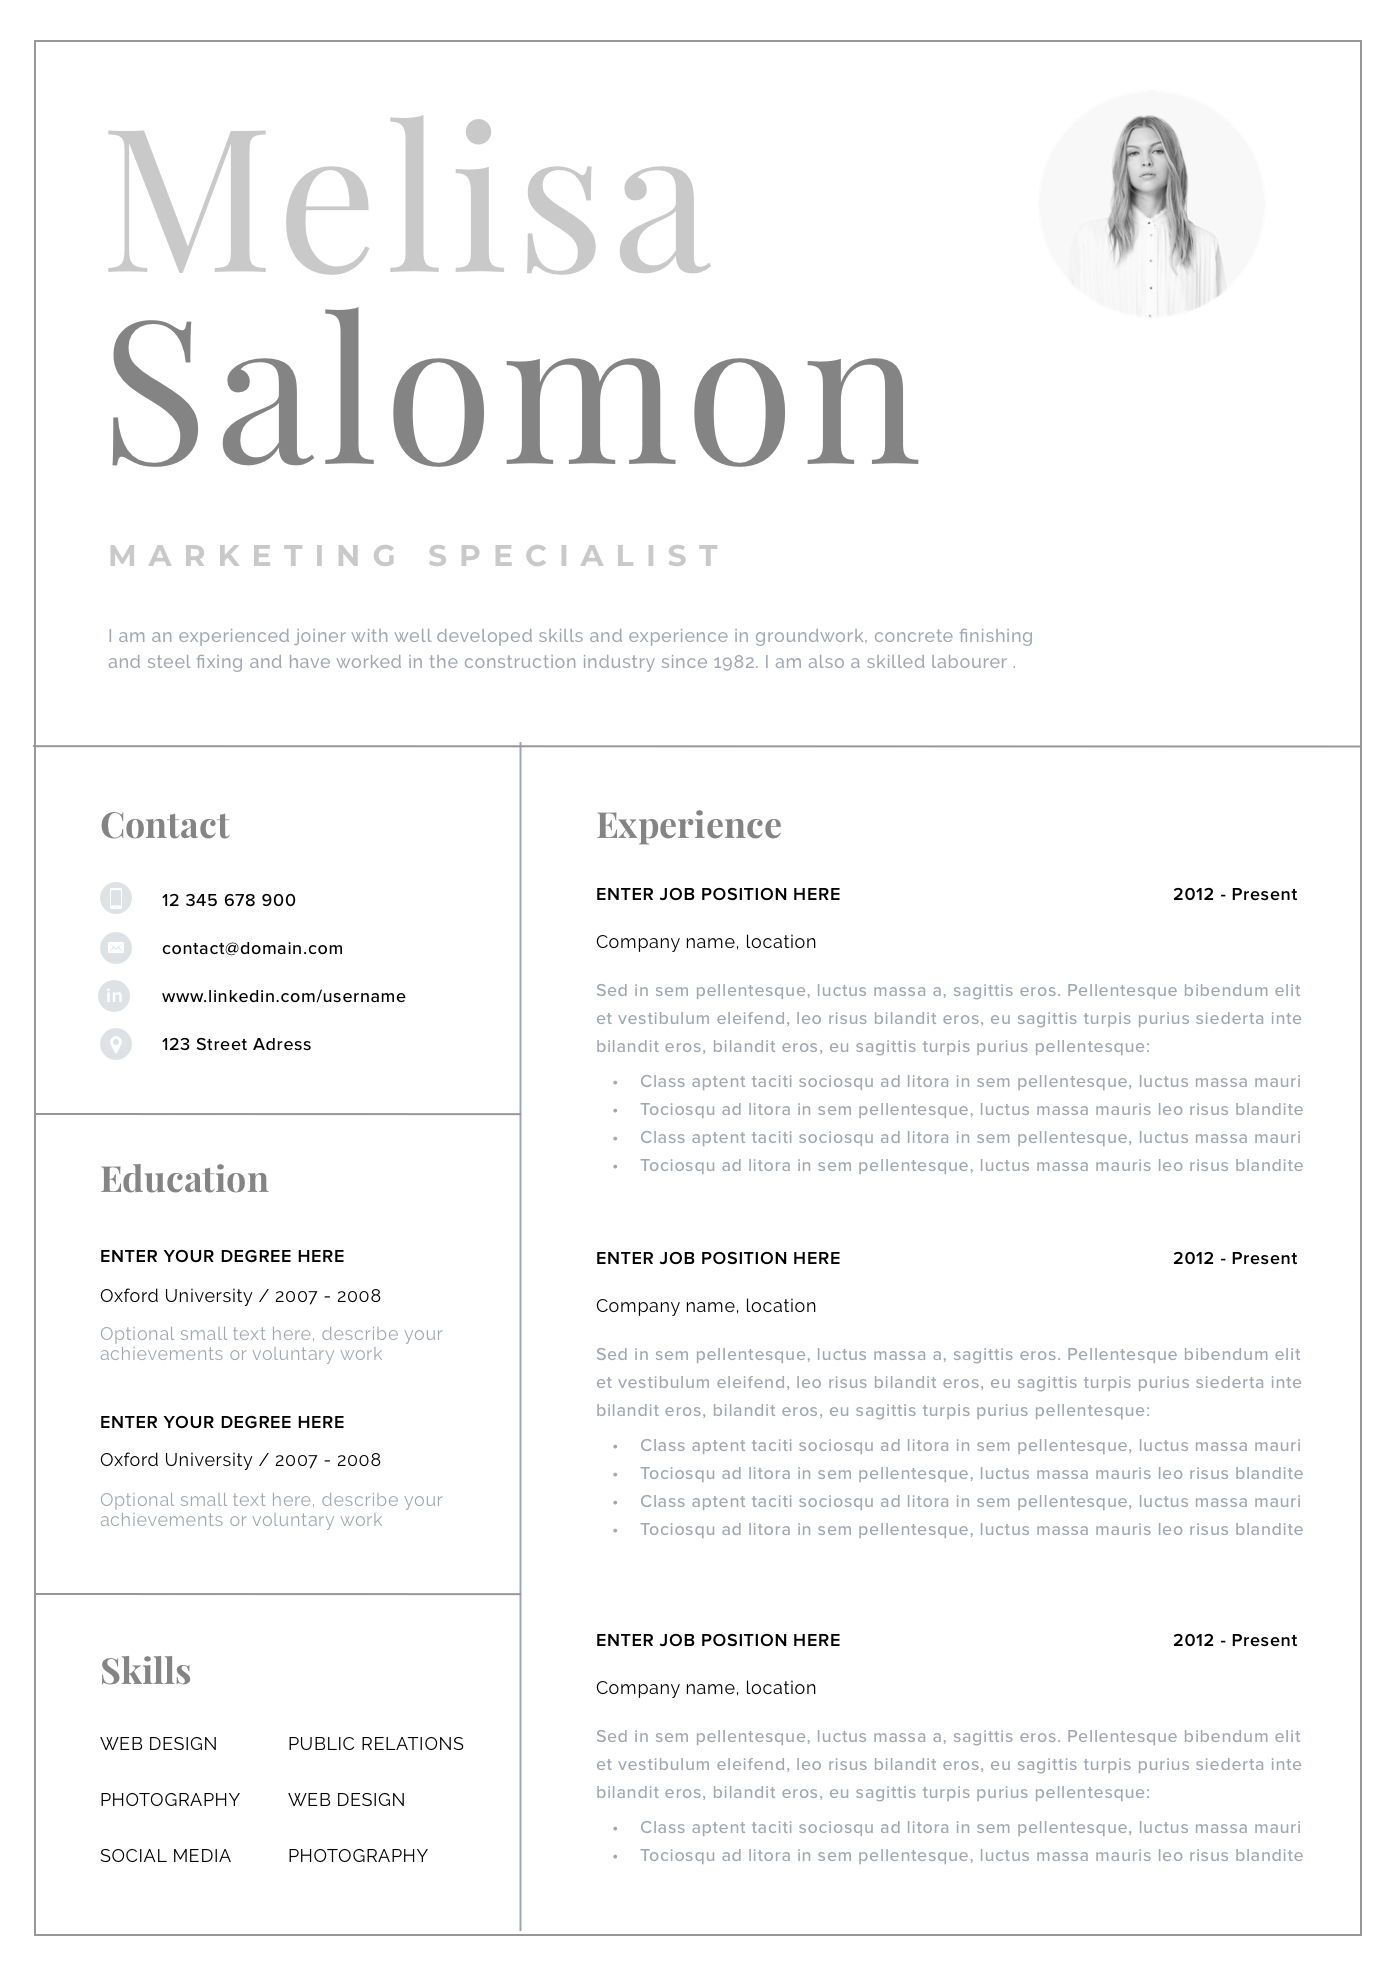 Professional Cv Template With Photo For Word Simple Cv Etsy Cv Template Professional Resume Template Resume Template Professional